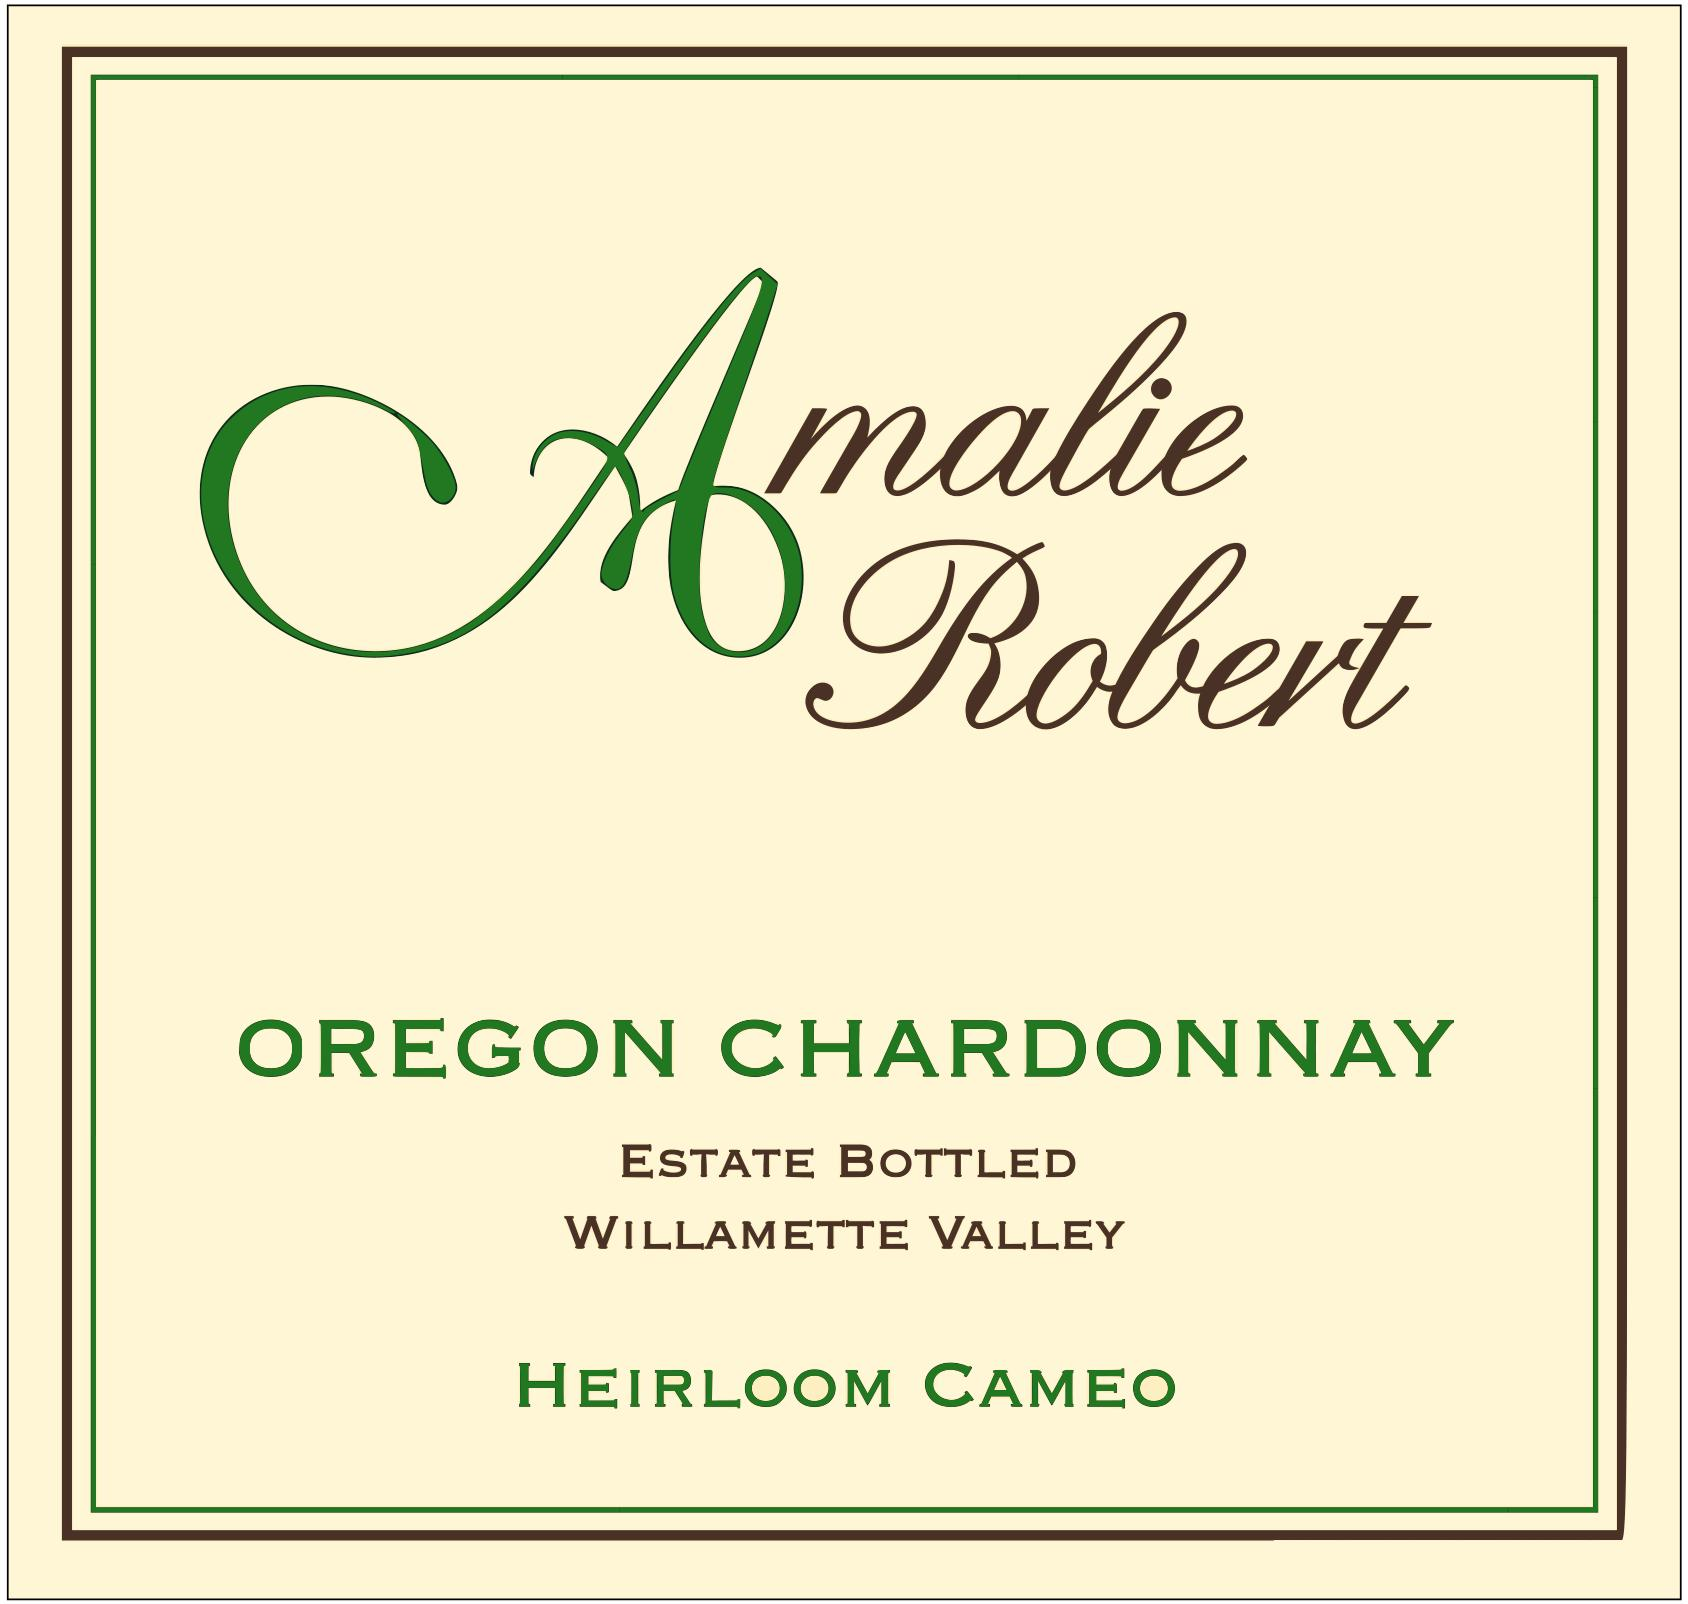 2015 Heirloom Cameo Chardonnay - 93 pts Vinous THUMBNAIL